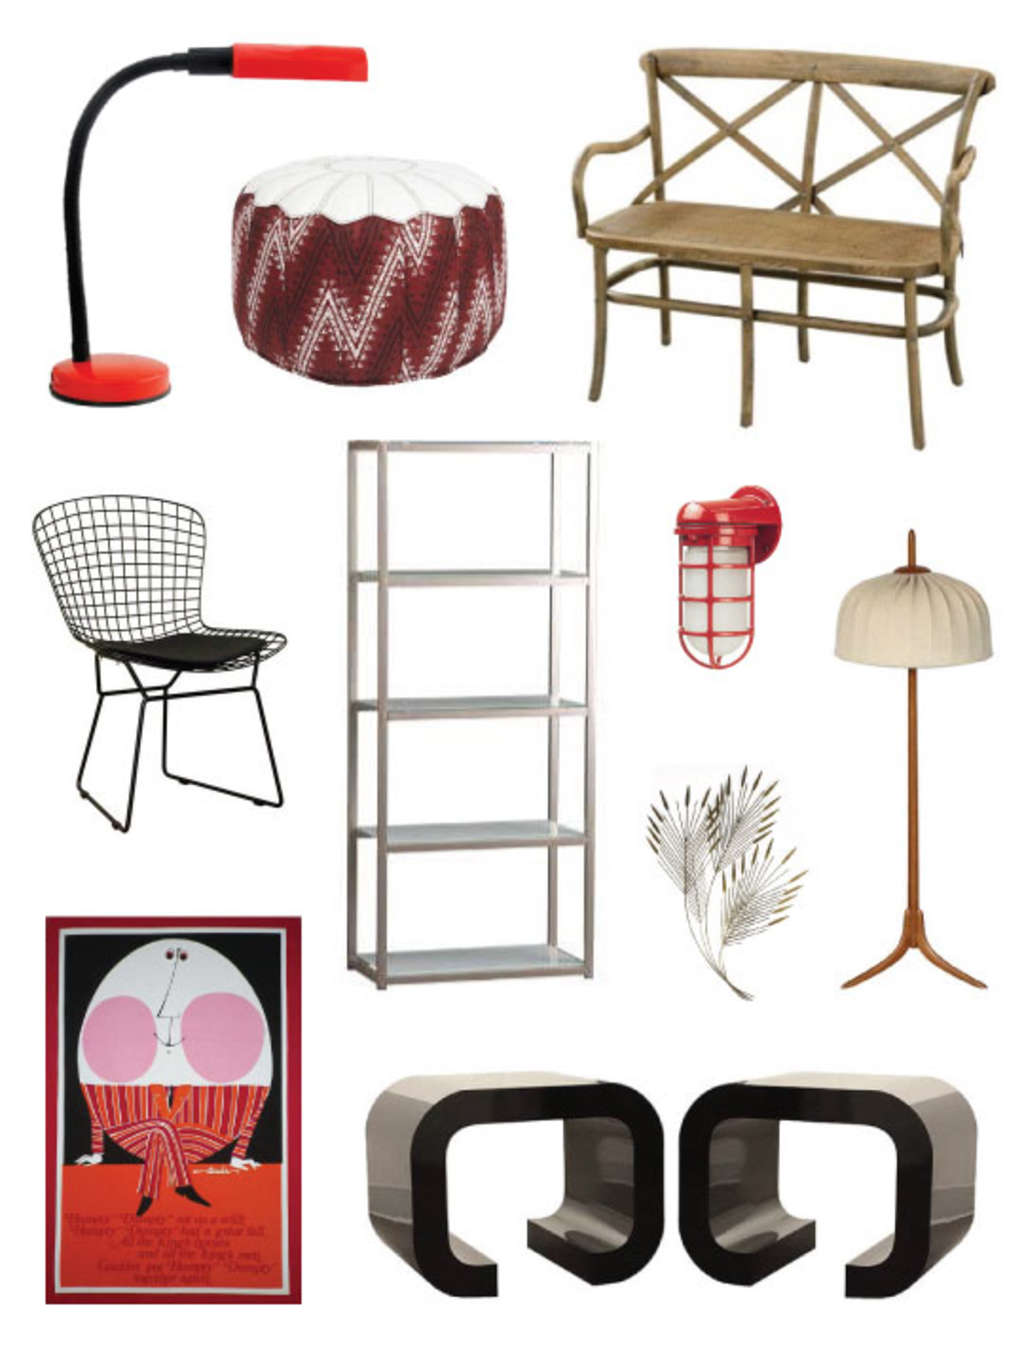 Find & Buy Secondhand Design from Your Neighbors!